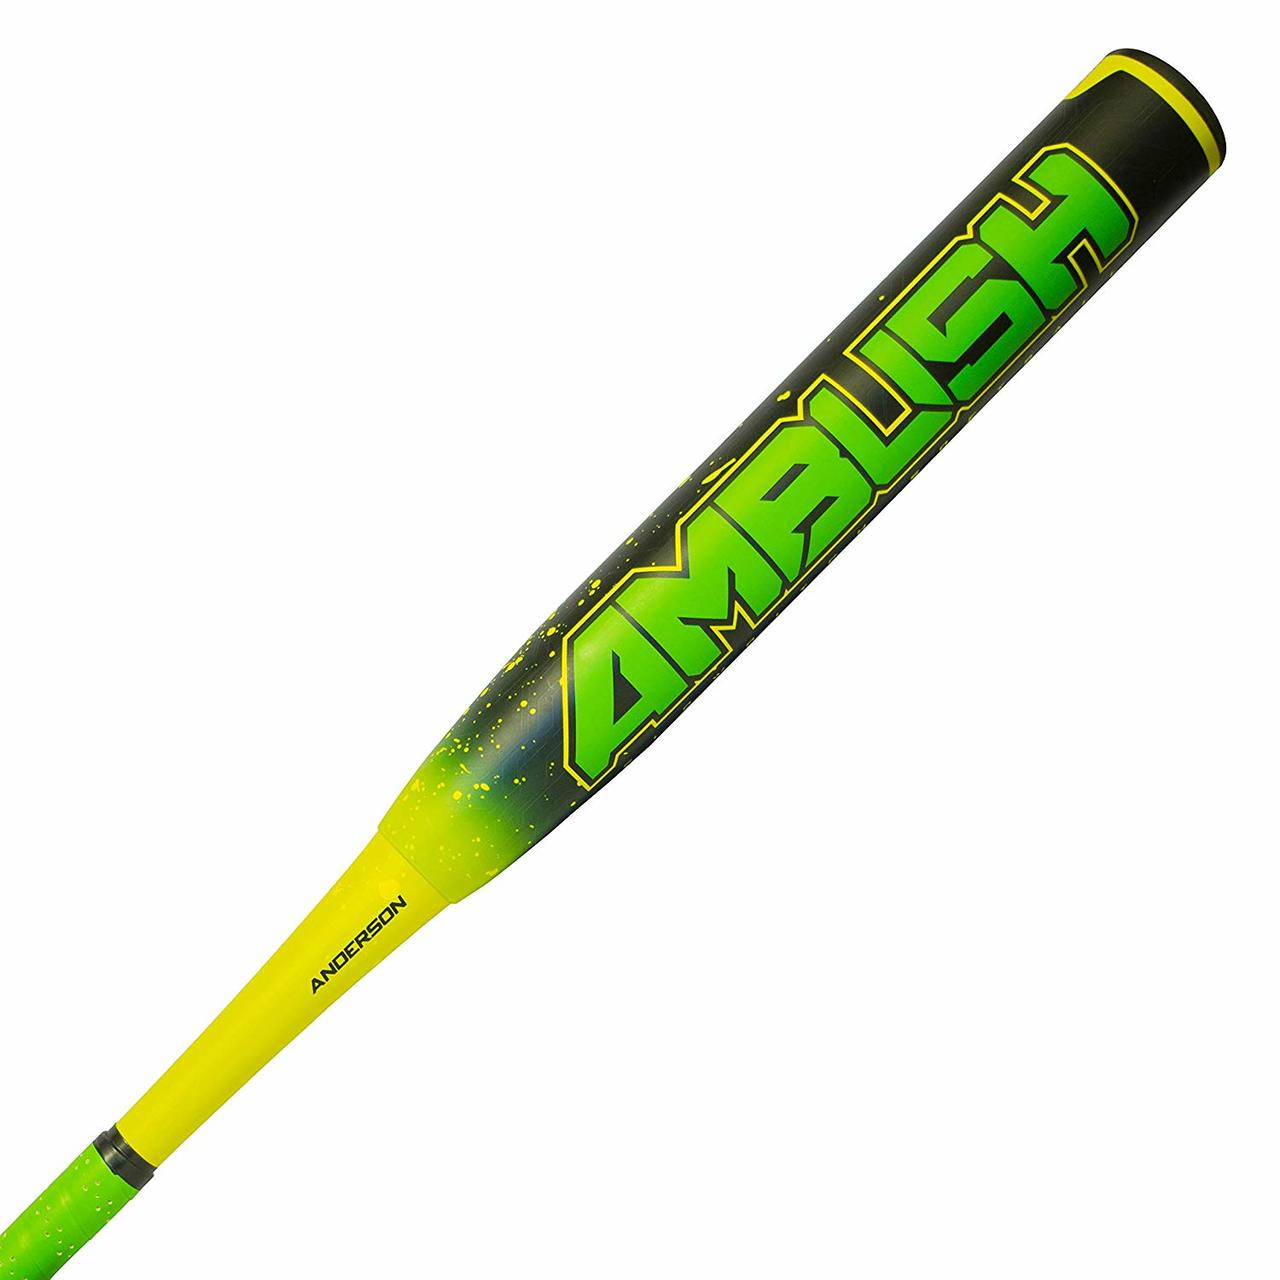 anderson-2018-ambush-composite-slowpitch-softball-bat-34-in-28-oz 011046-3428 Anderson 874147008683 wo-piece Multi layered Composite for performance and durability ½ Ounce end